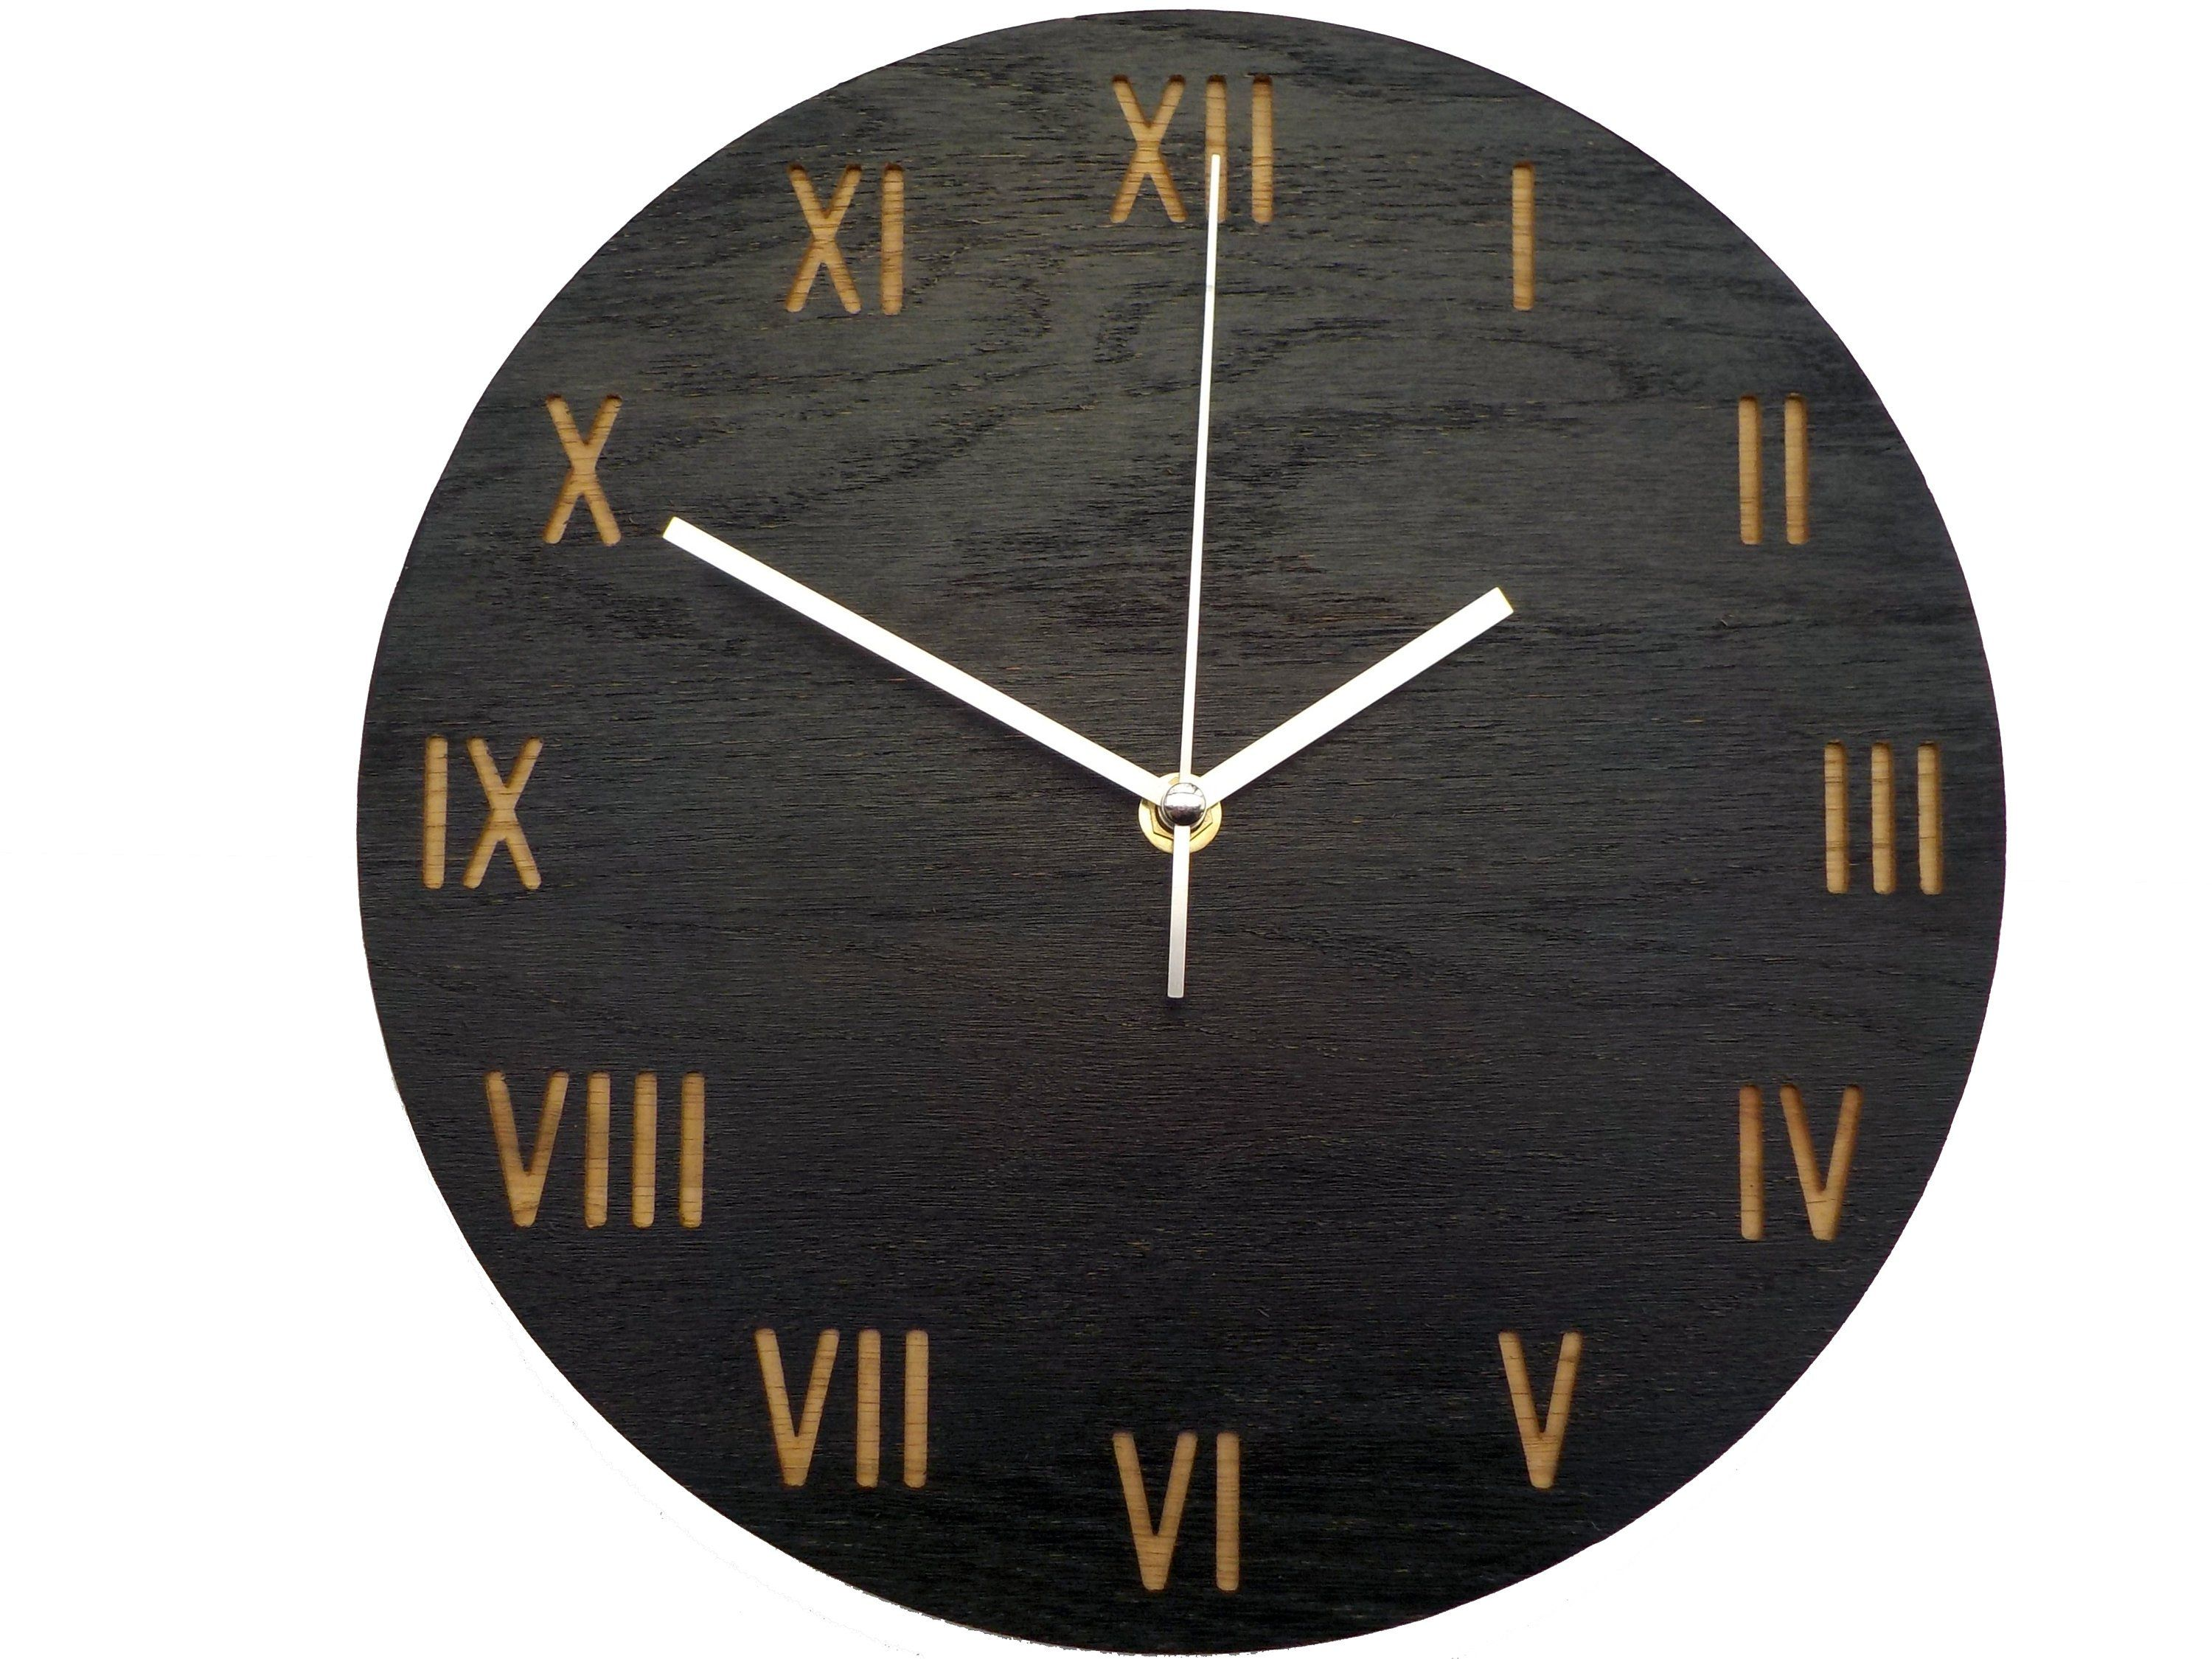 Modern Wall Clock Wall Clock Engraved Clock Modern Clock Natural Oak Wood Clock Wall Clock Roman Number Clock Minimalist Clock Minimalist Clocks Wall Clock Modern Wood Clocks